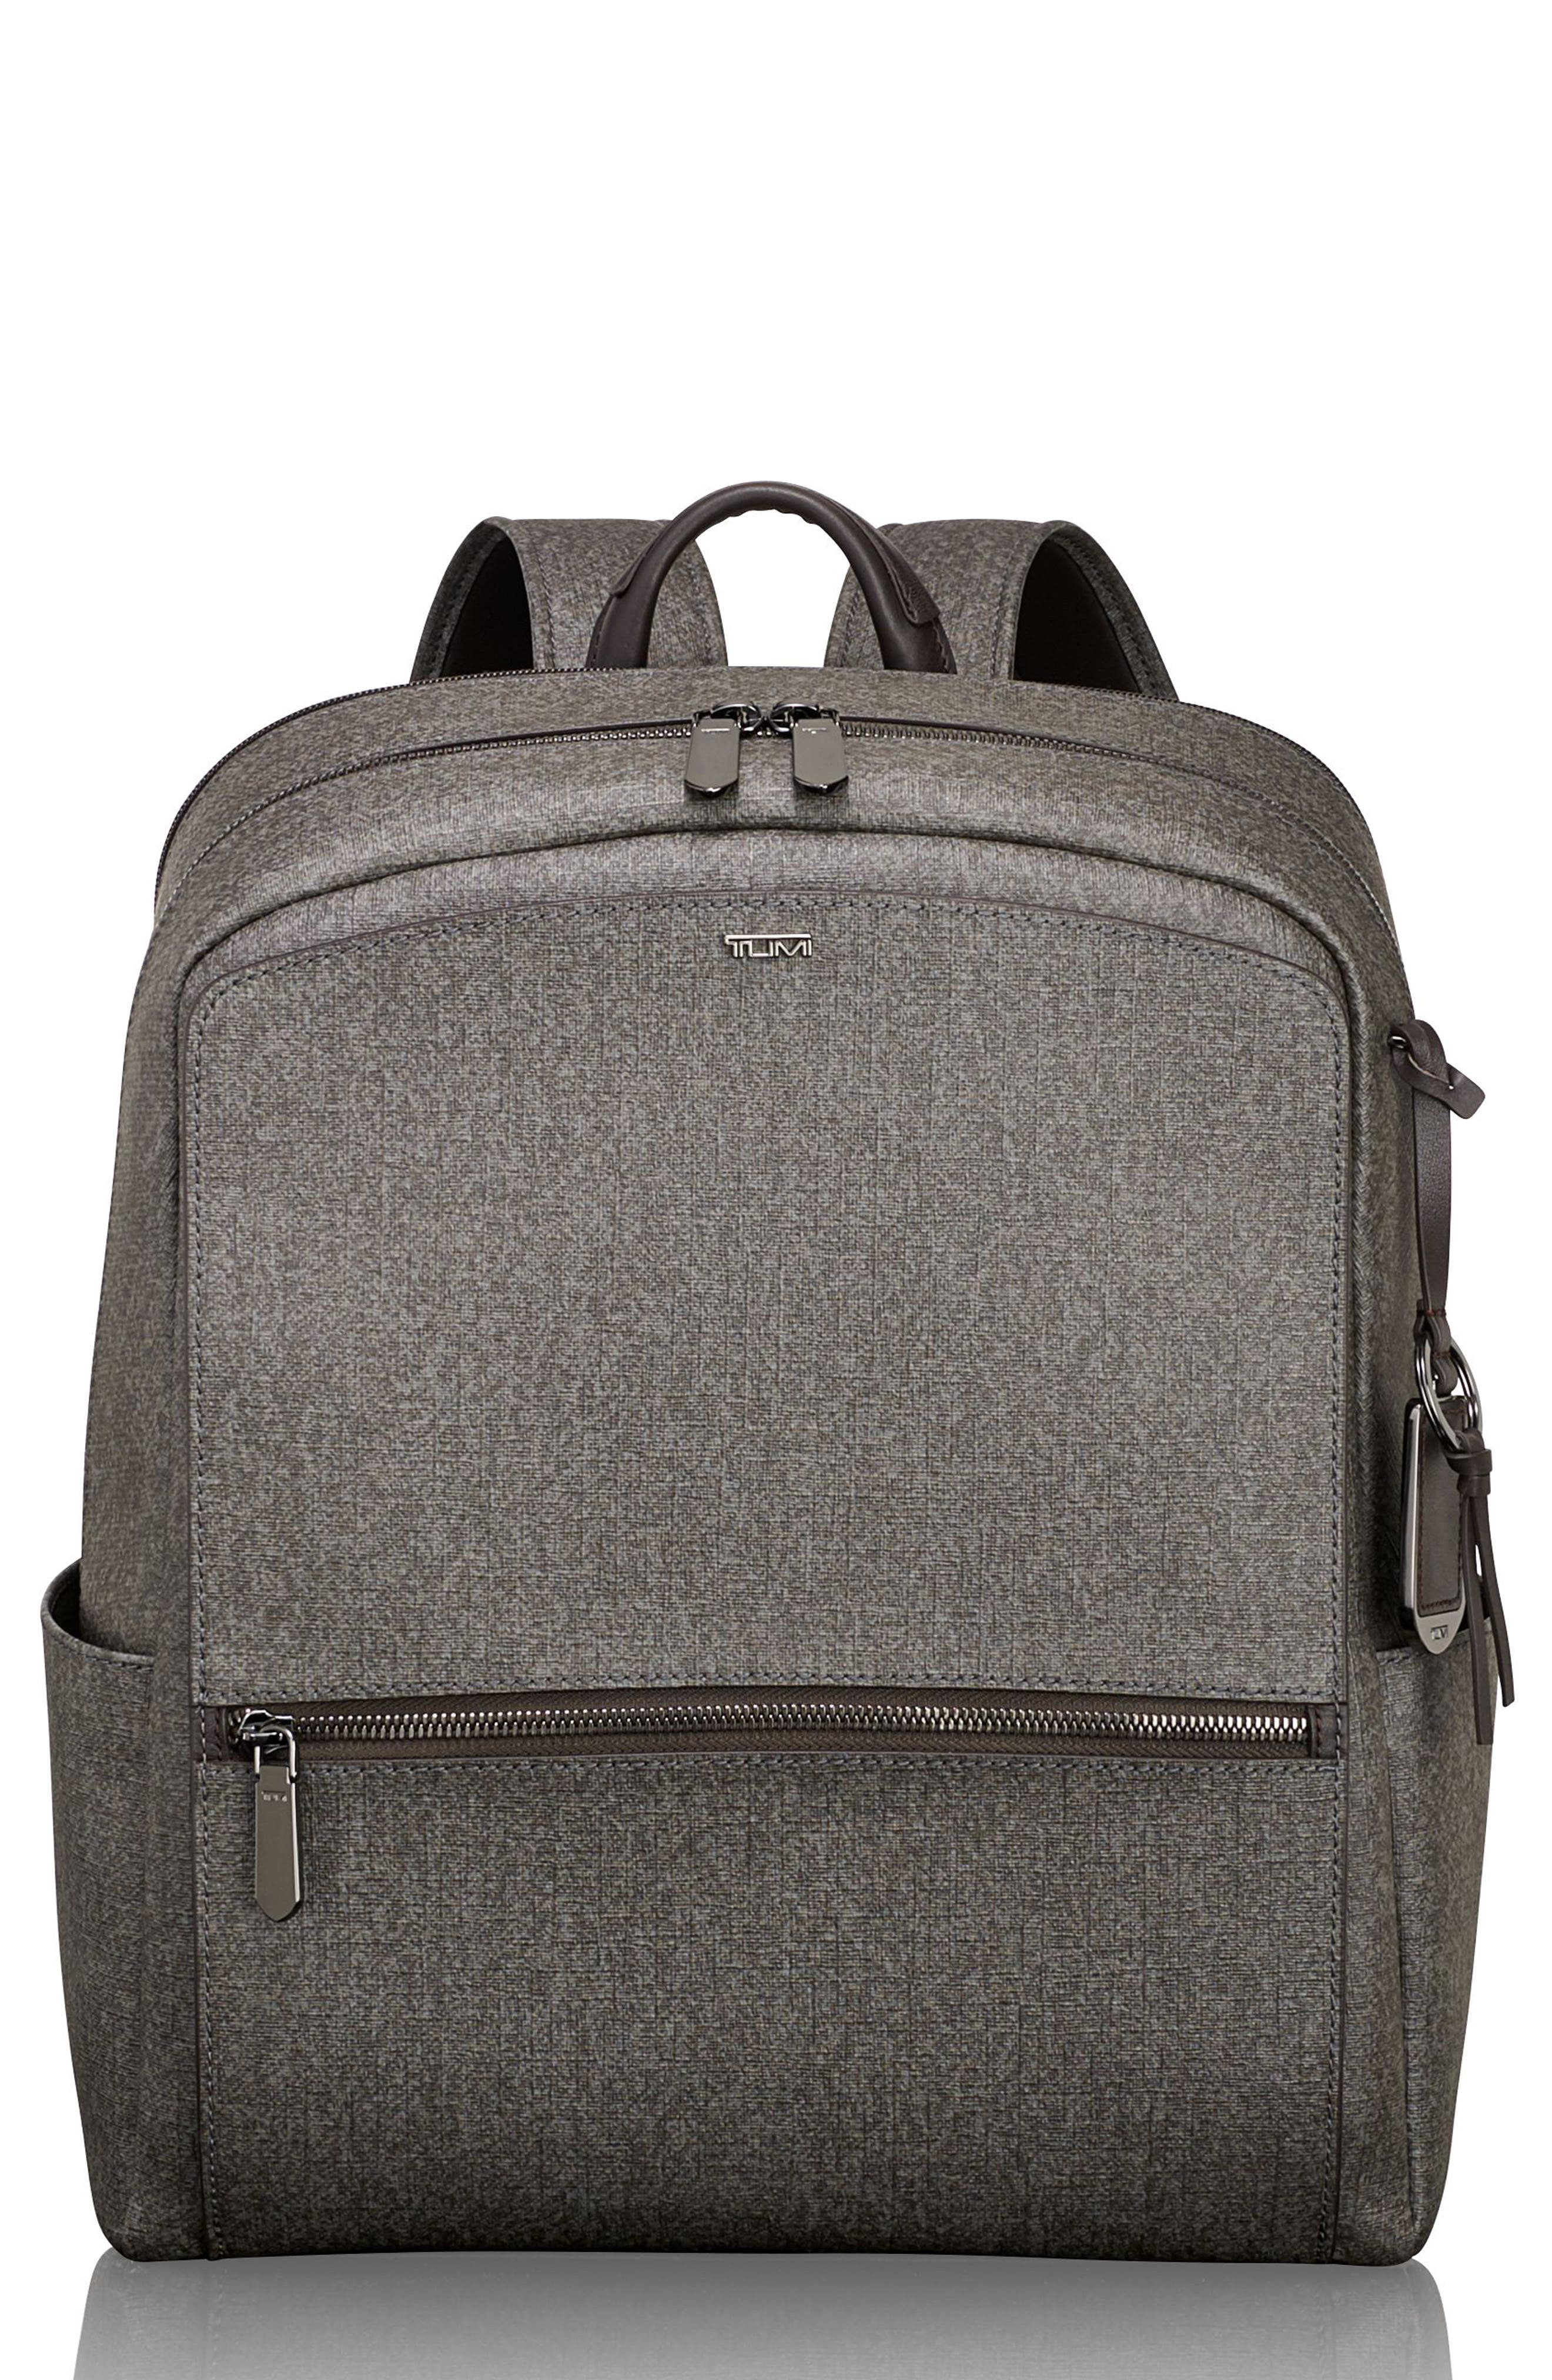 Stanton Becca Coated Canvas Backpack,                         Main,                         color, Earl Grey